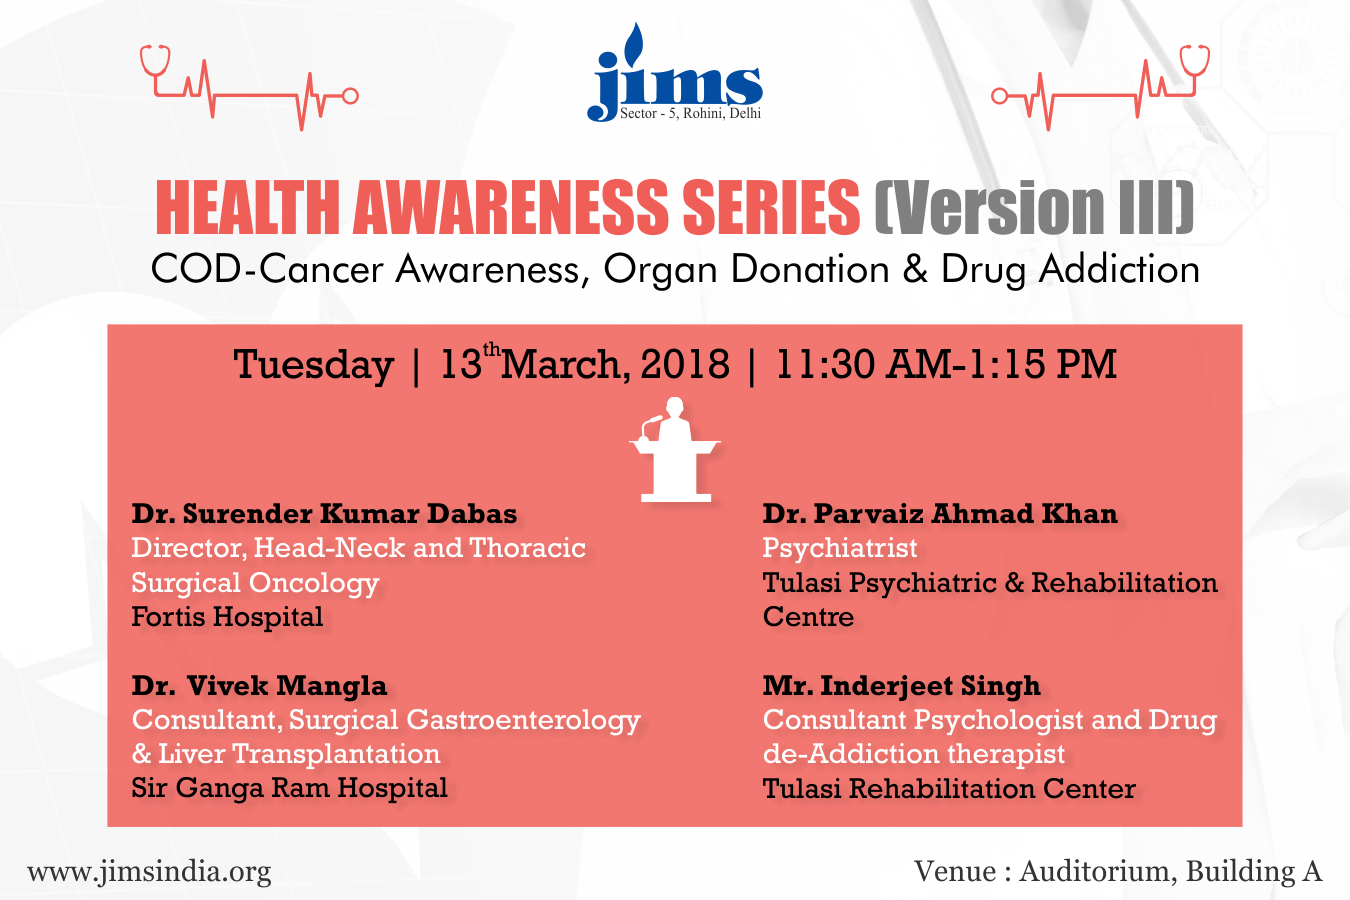 JIMS is organizing a Health Awareness Series (Version III) on Tuesday 13th March 2018